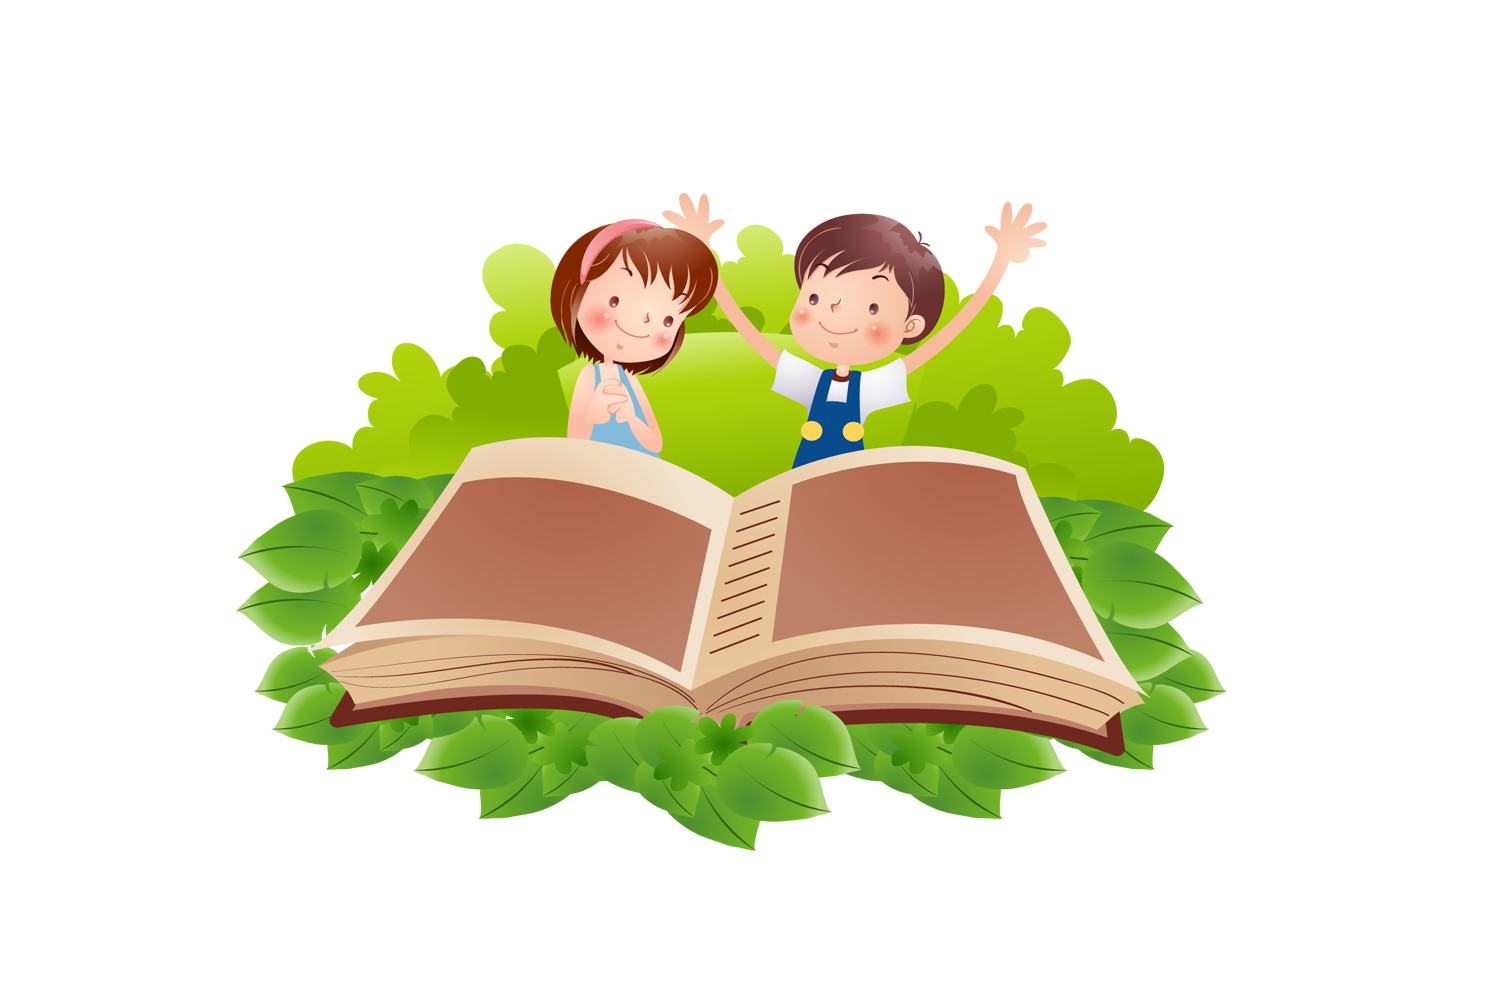 Clipart of child reading a book graphic library download Reading Book Clip art - School children 1500*1000 transprent Png ... graphic library download